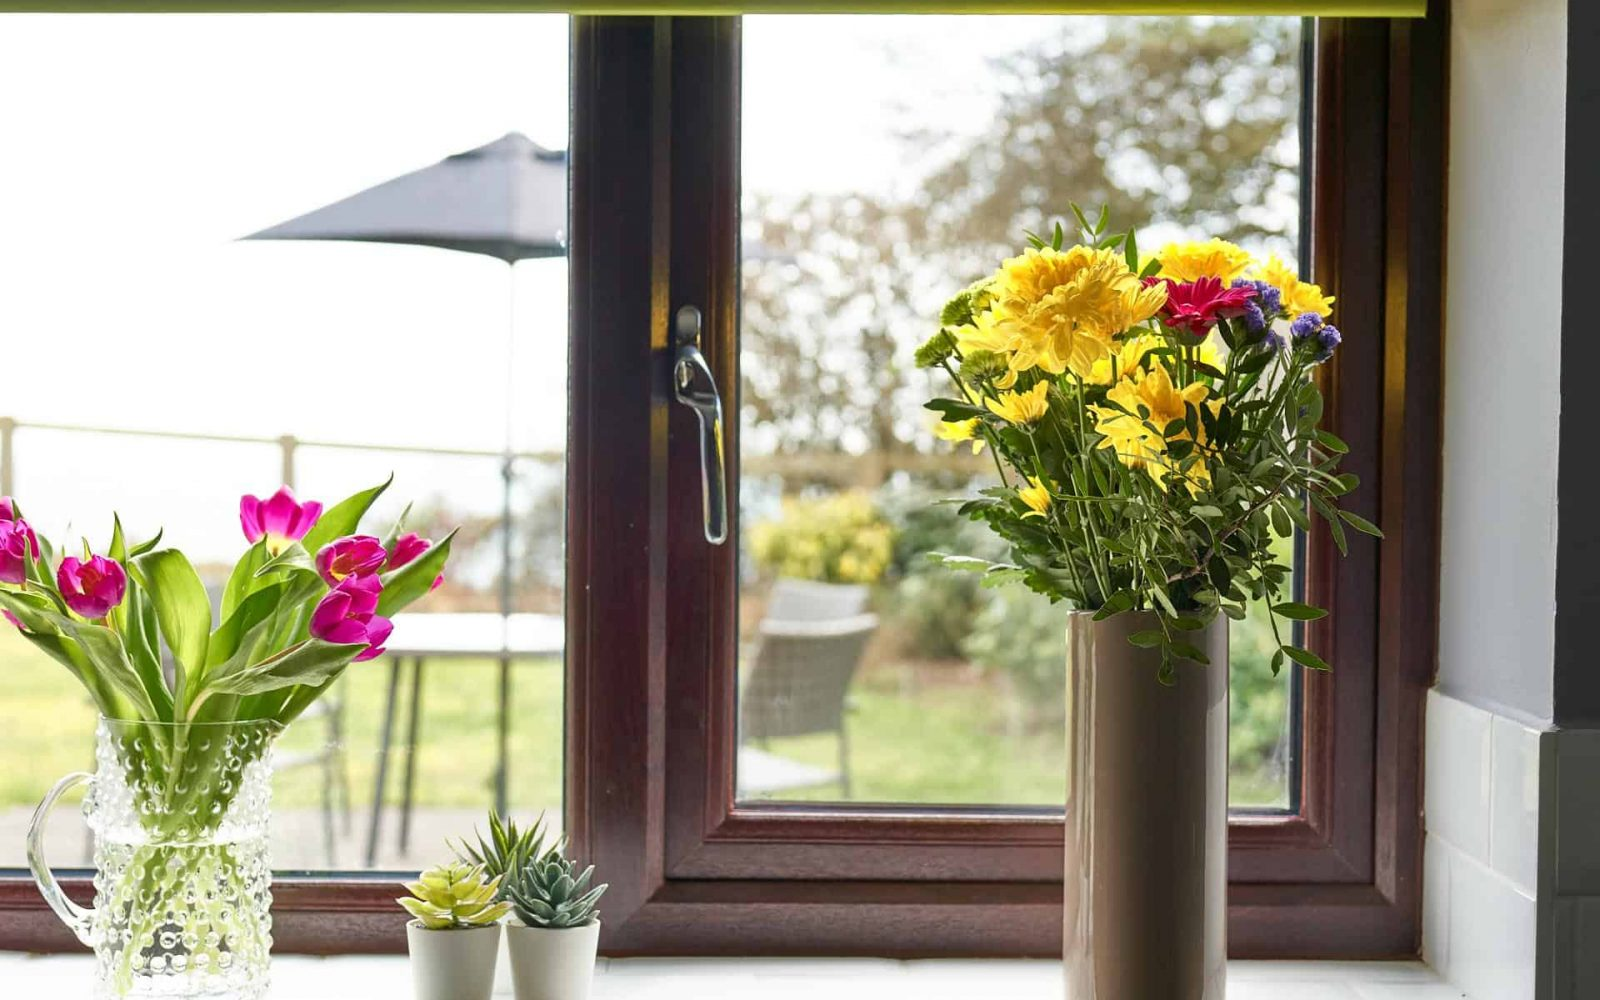 Cute and colourful flowers sat on the window sill with views of the garden